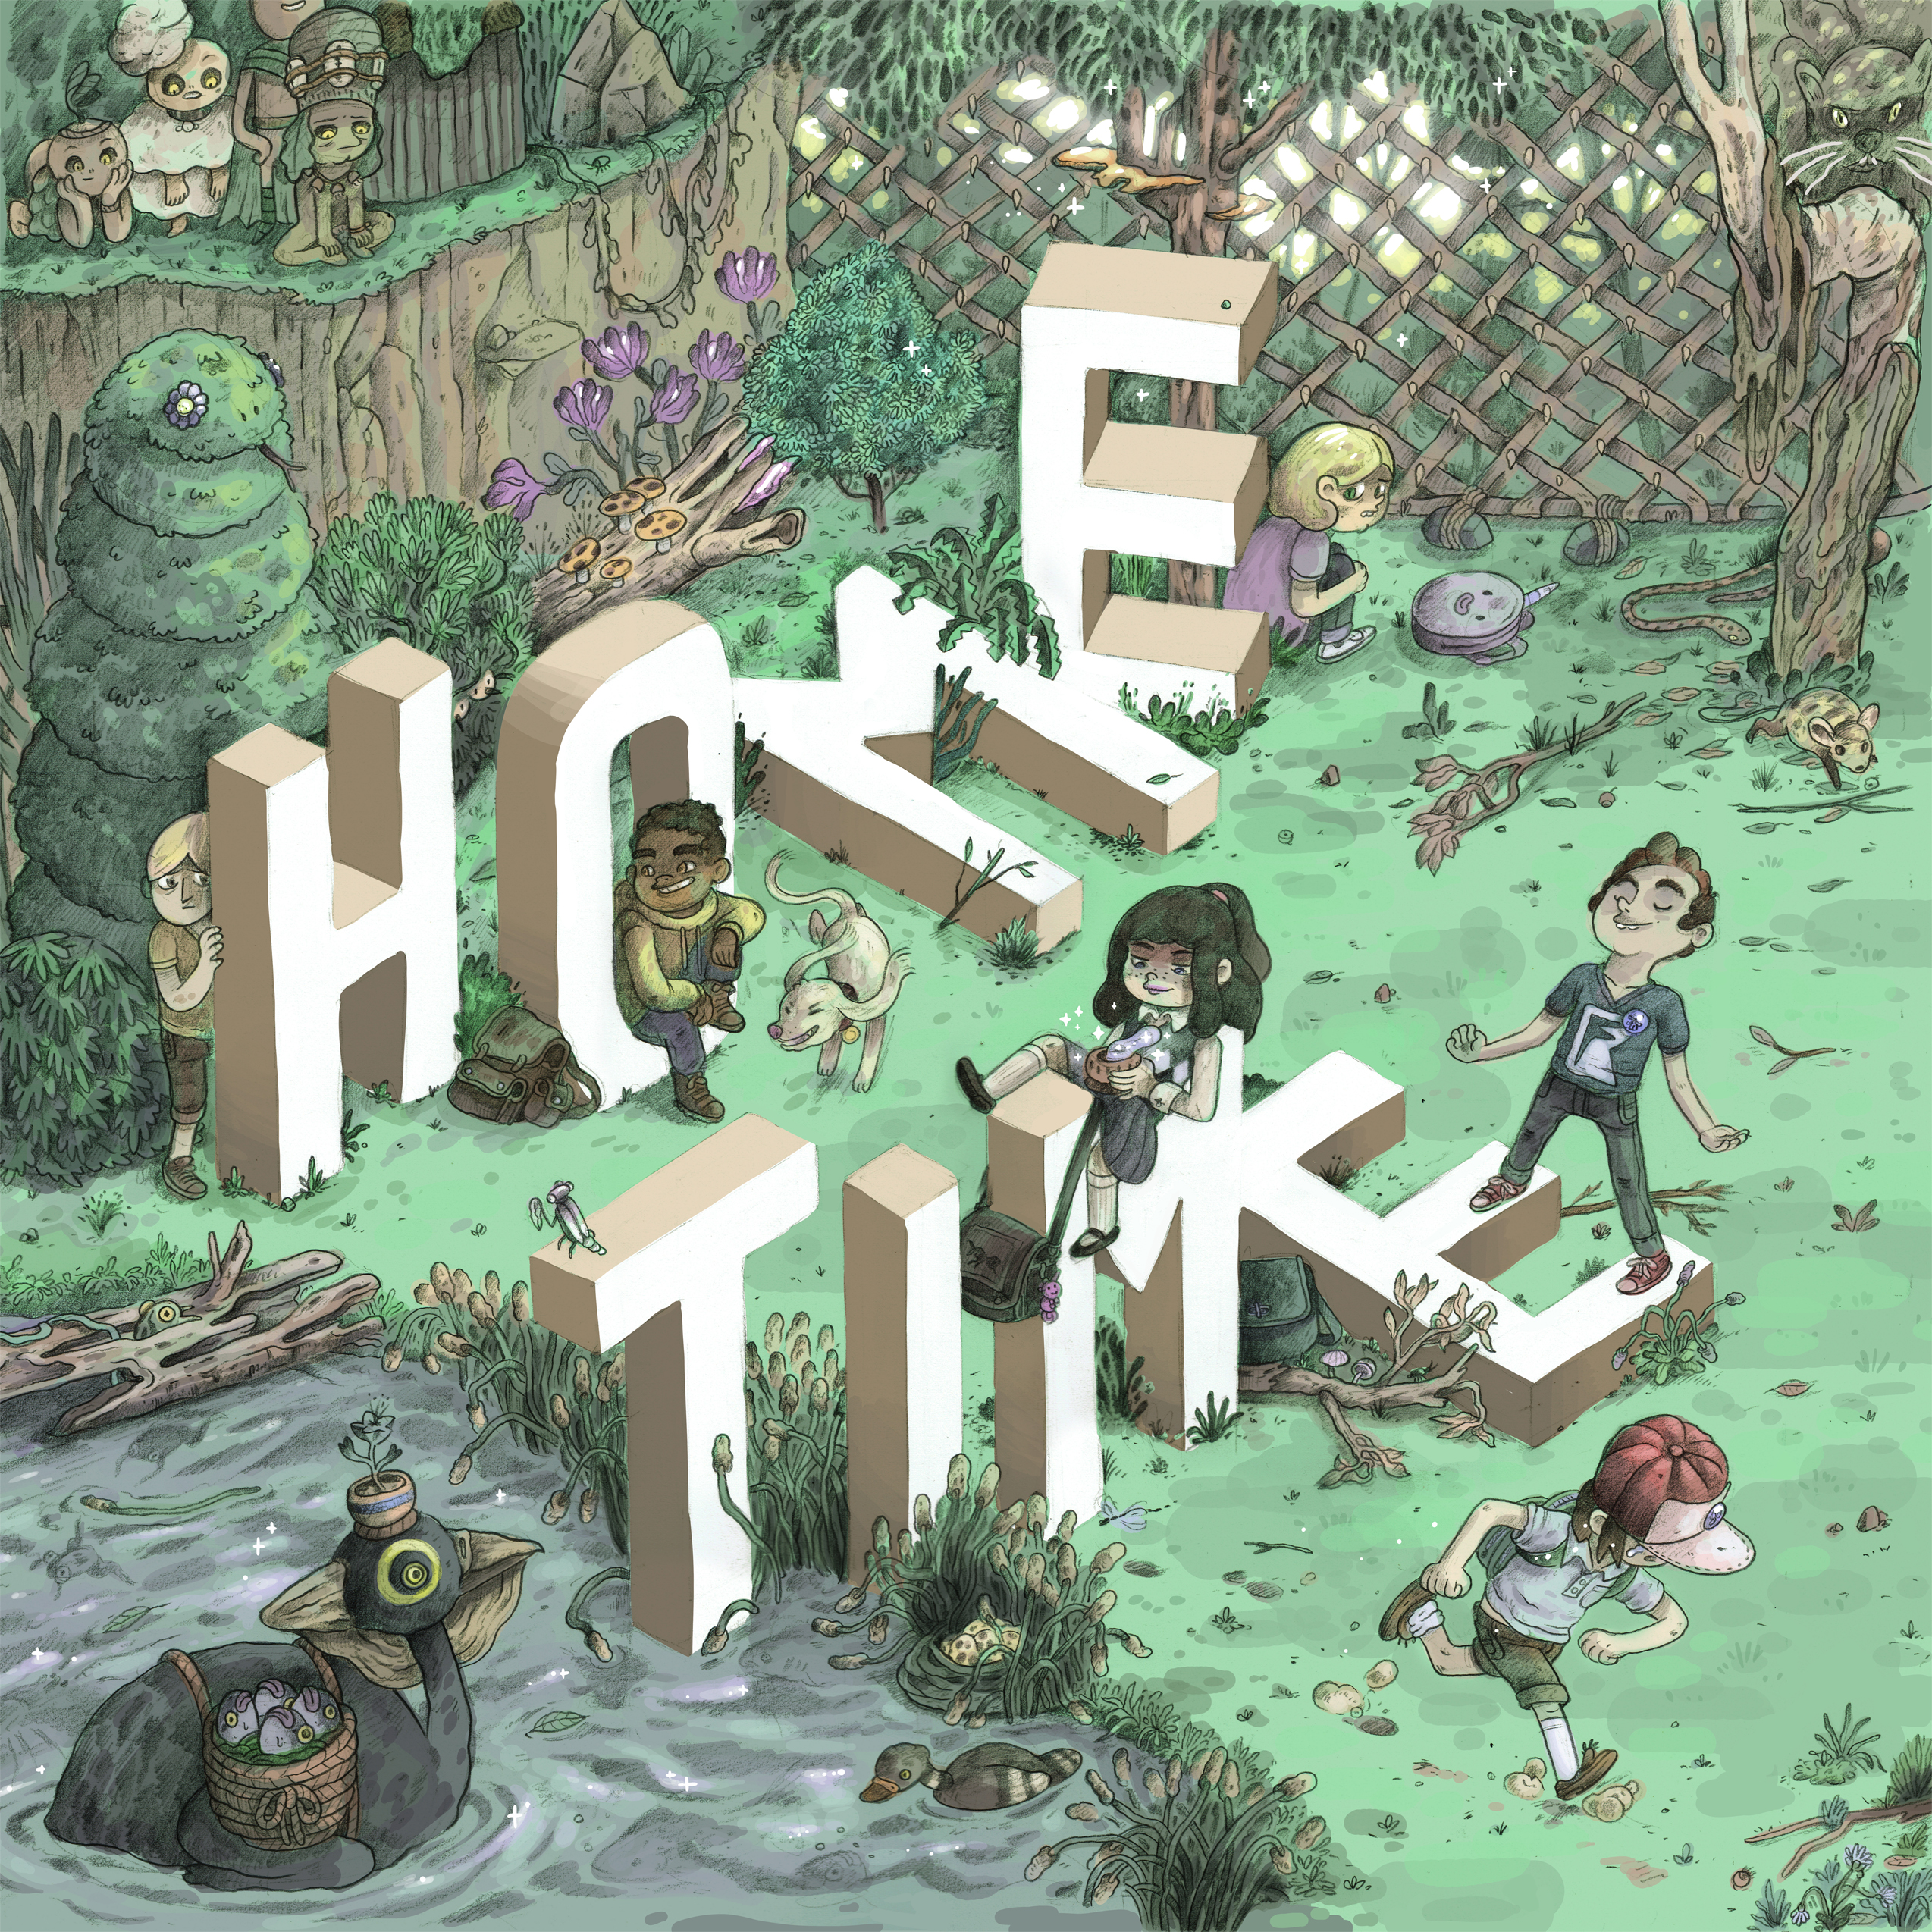 home time promo cover 1